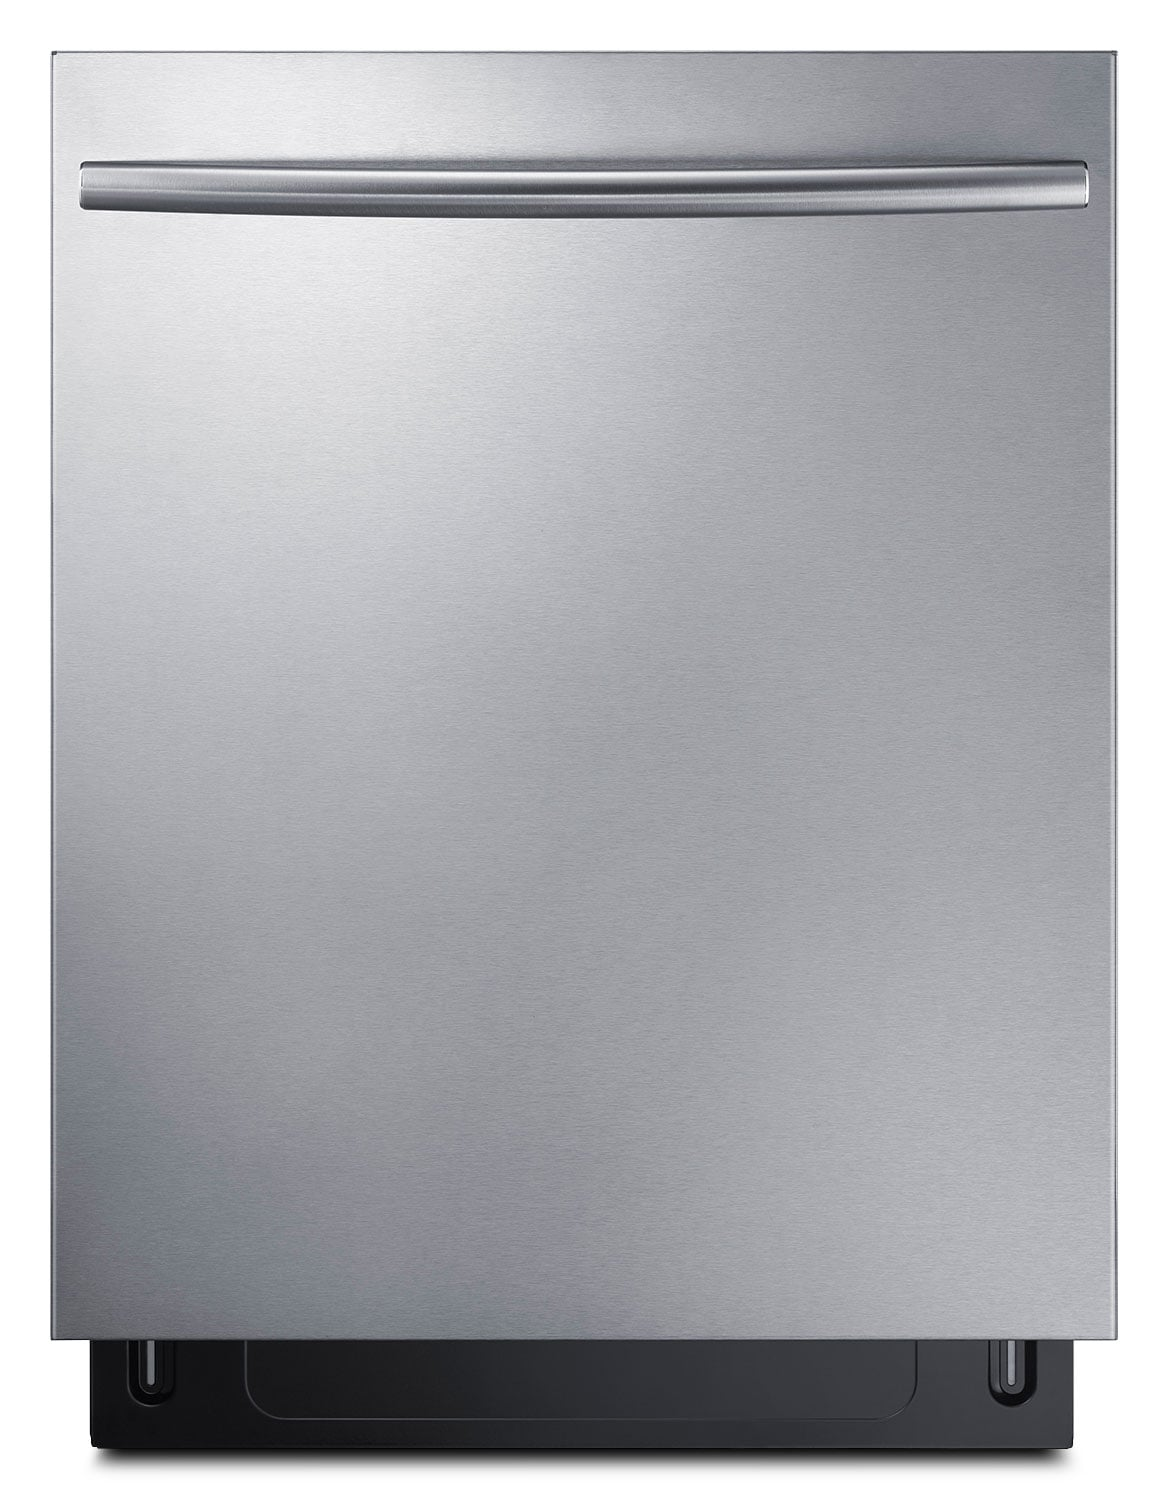 Samsung Built-In Dishwasher with Auto-Open Drying – DW80K7050US/AC